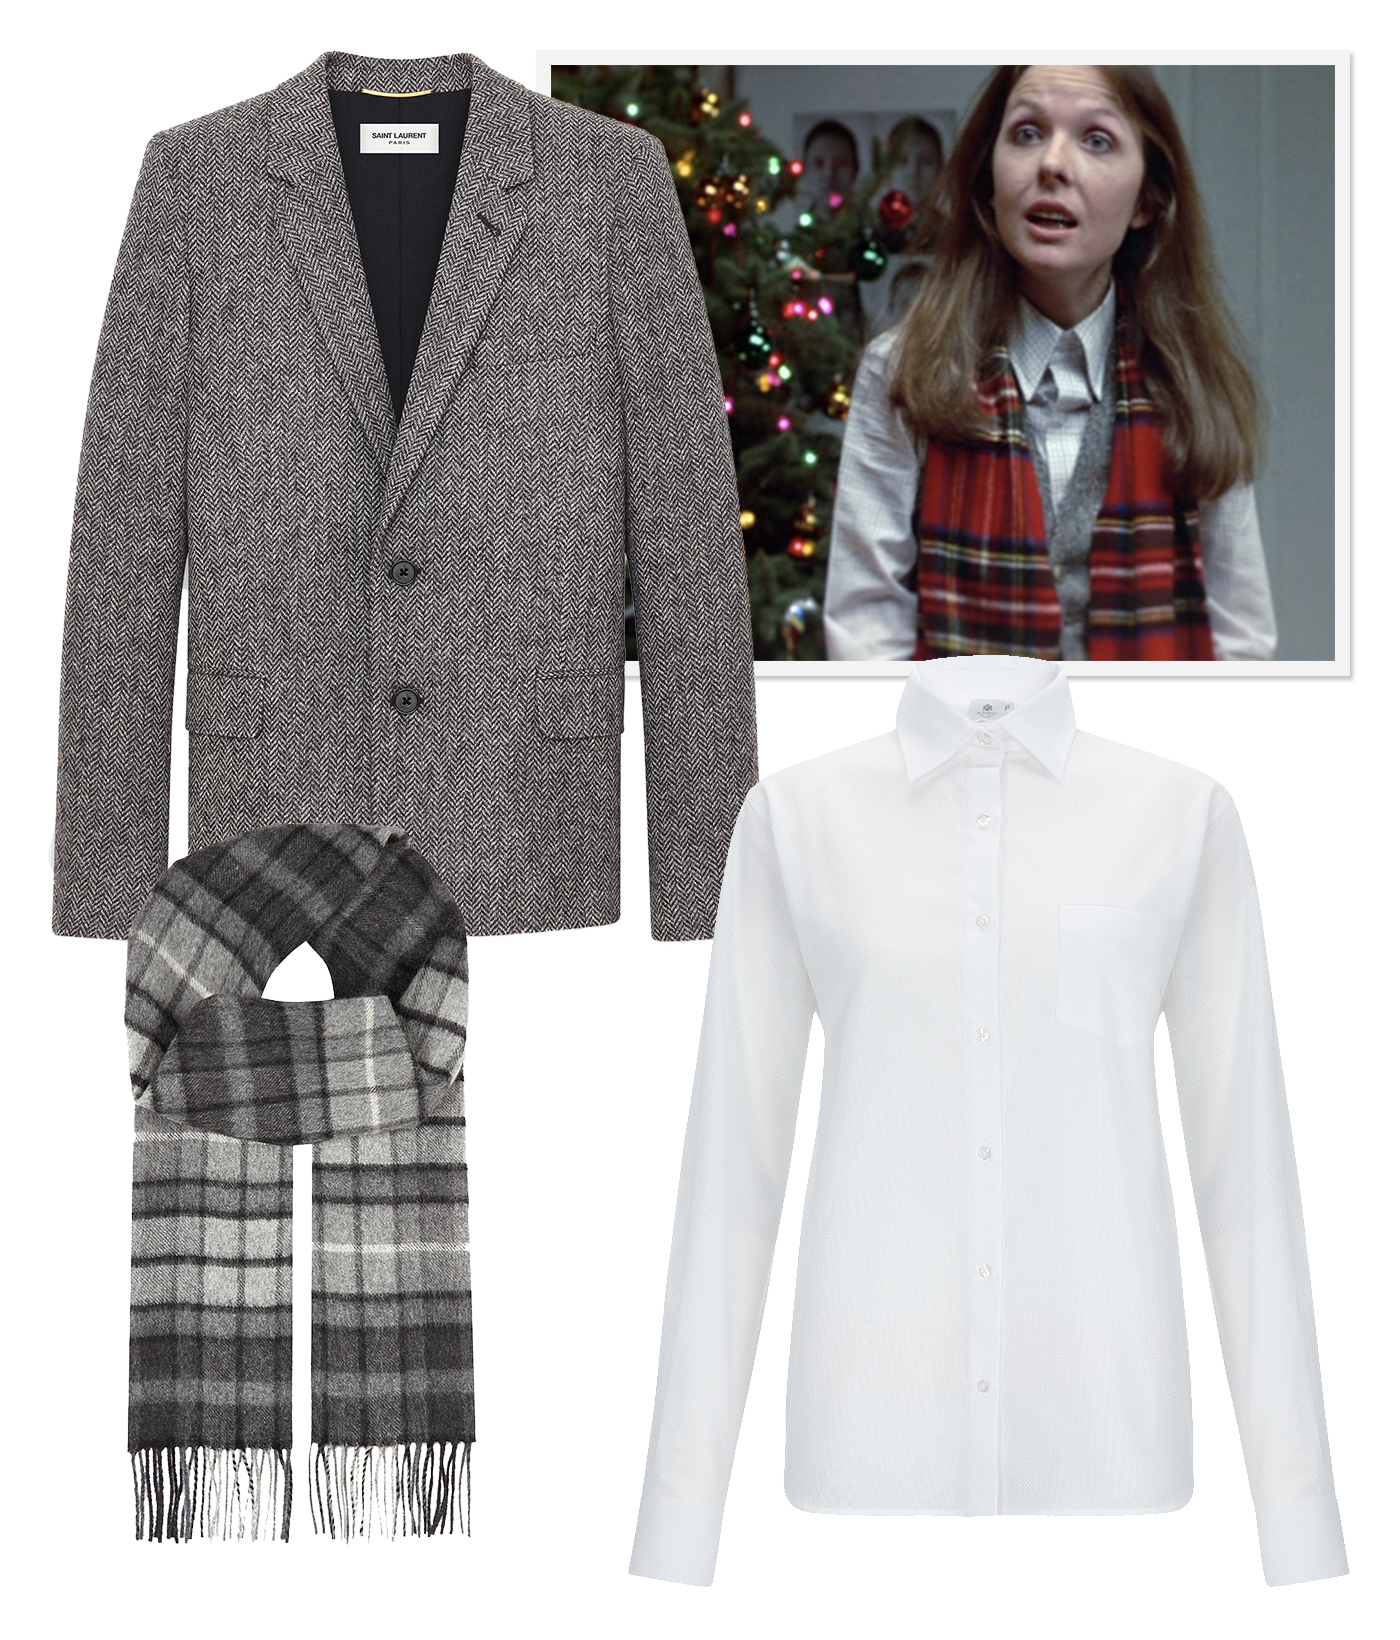 christmas-movies-outfit-inspiration_02.jpg